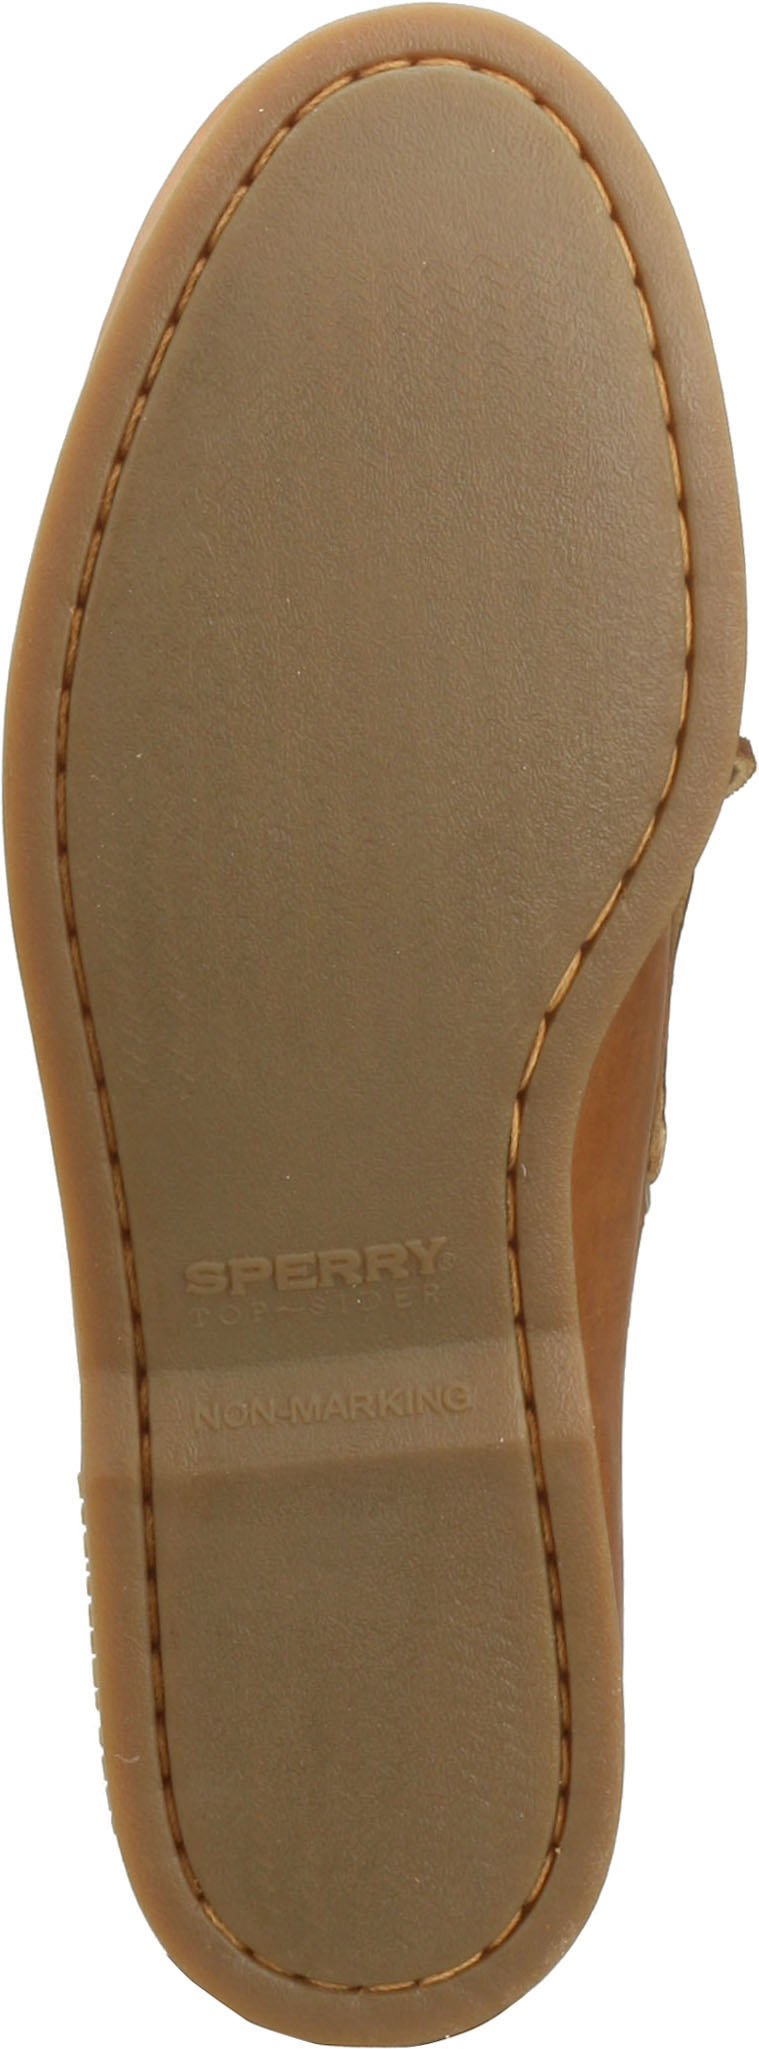 df48639ea715 Sperry Top Sider Men s 0197640 - Authentic Original 2-Eye - The Shoe ...